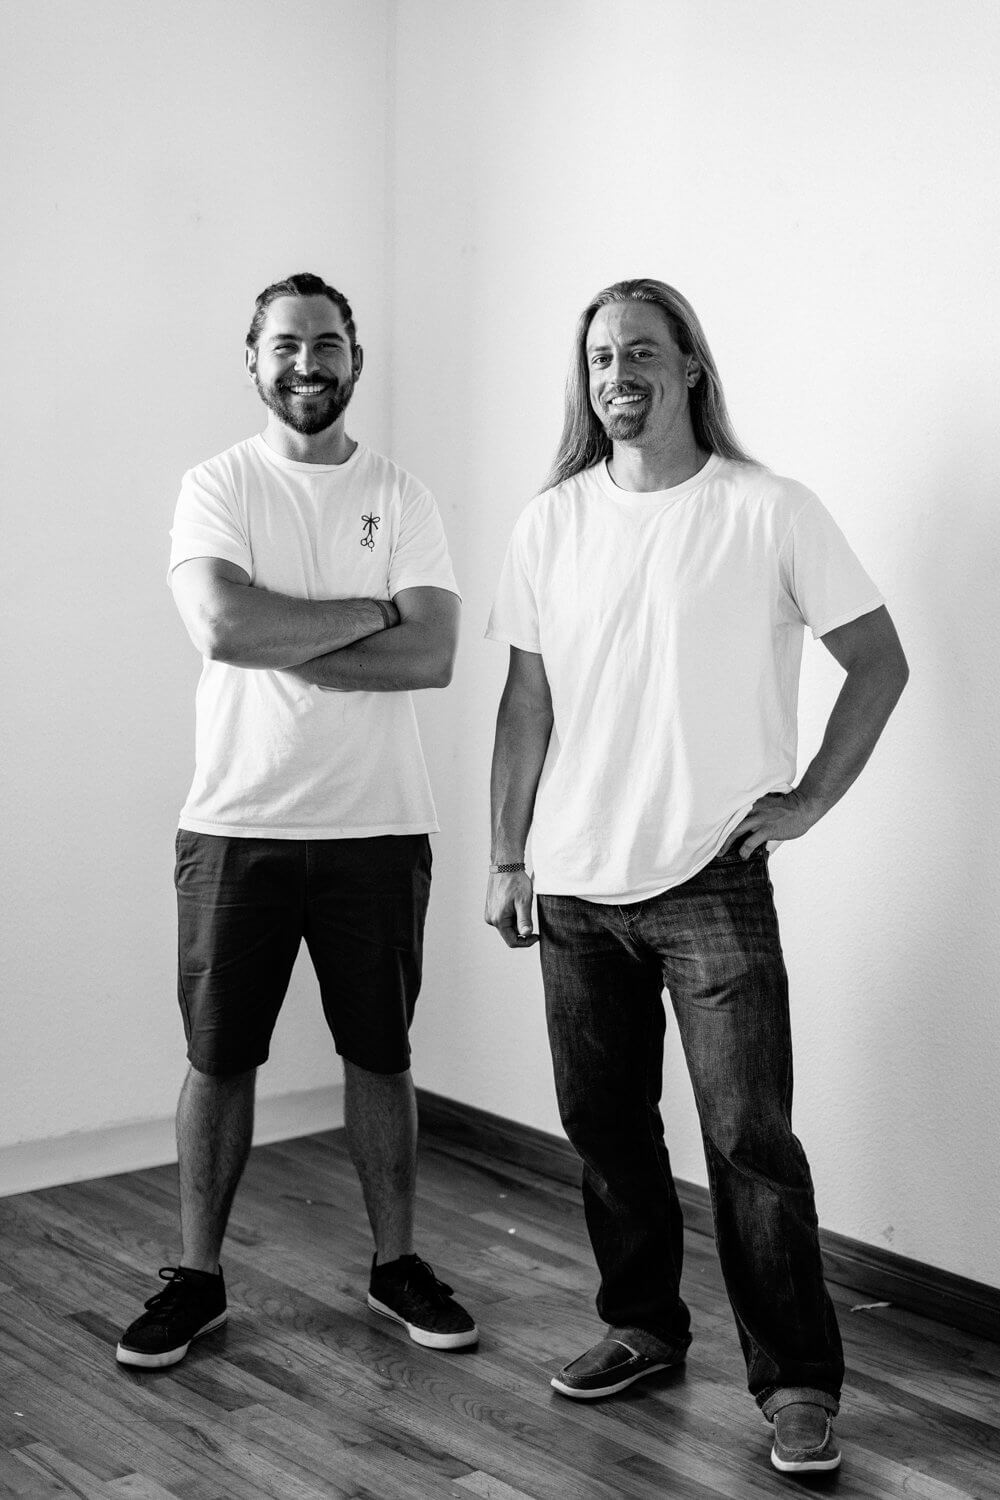 The Longhairs Founders Lindsay Barto and Chris Healy